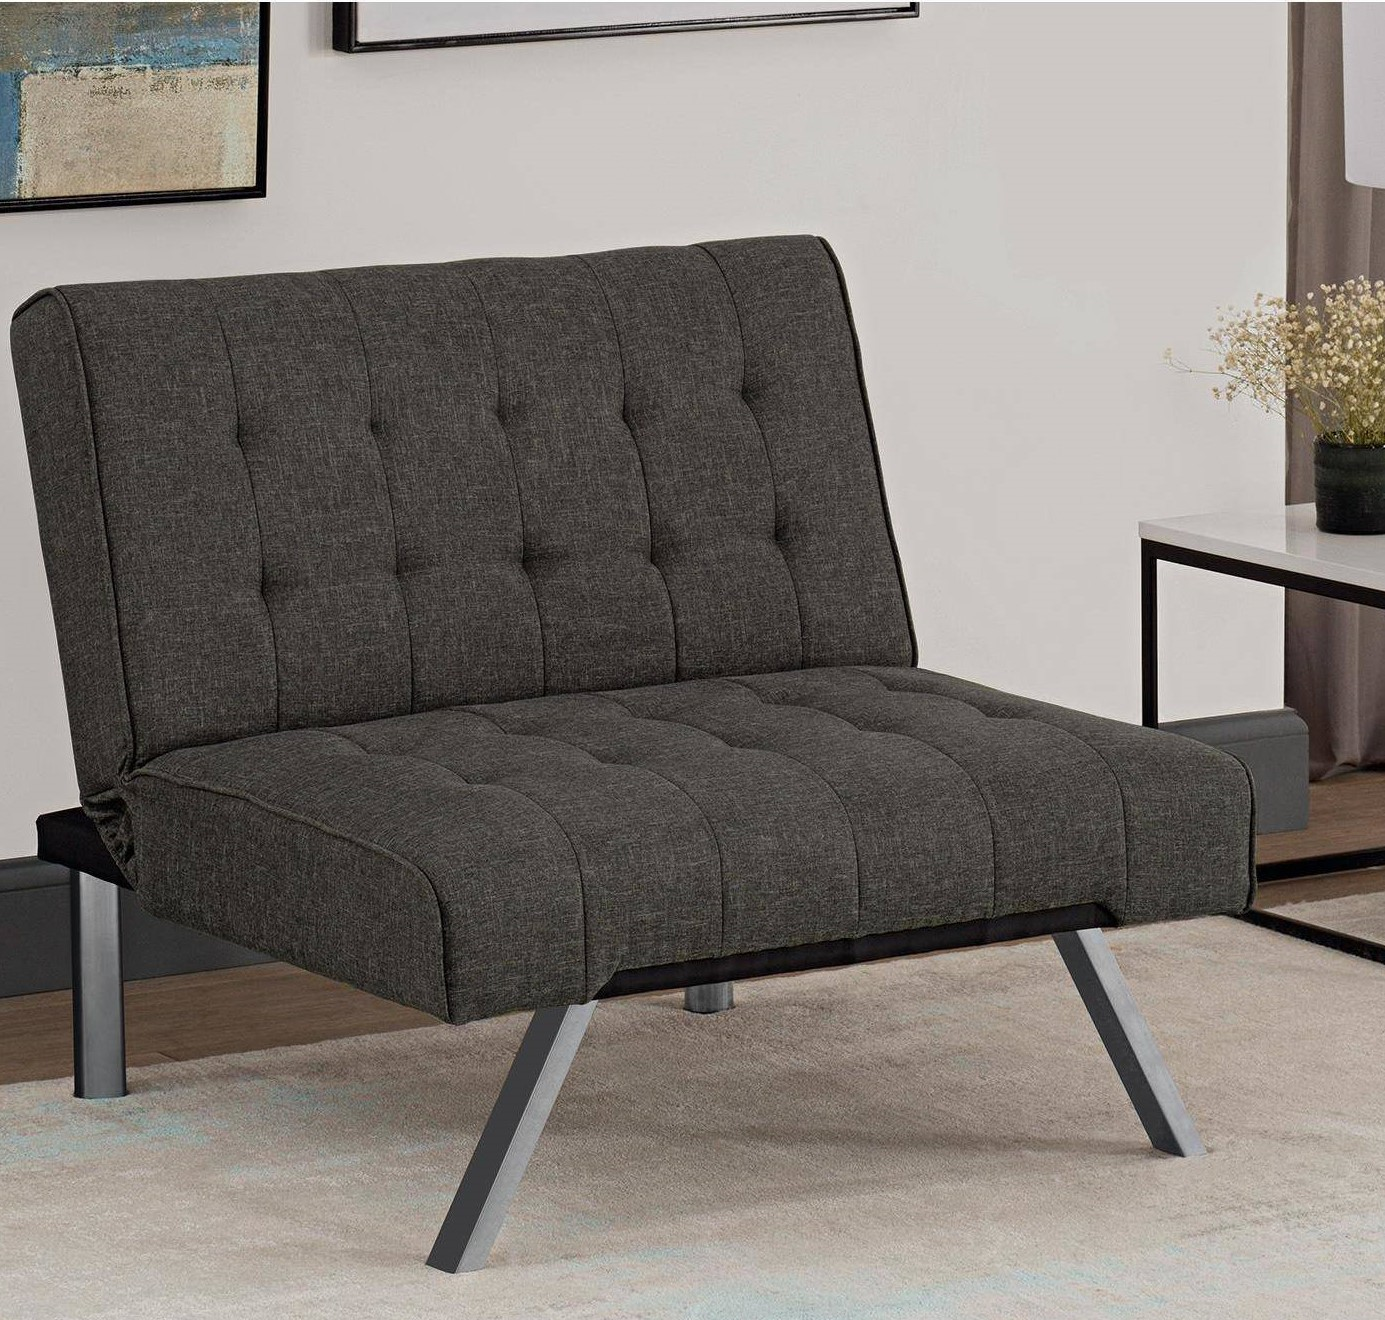 tufted accent chairs pc desk and chair dhp emily multiple colors available walmart com